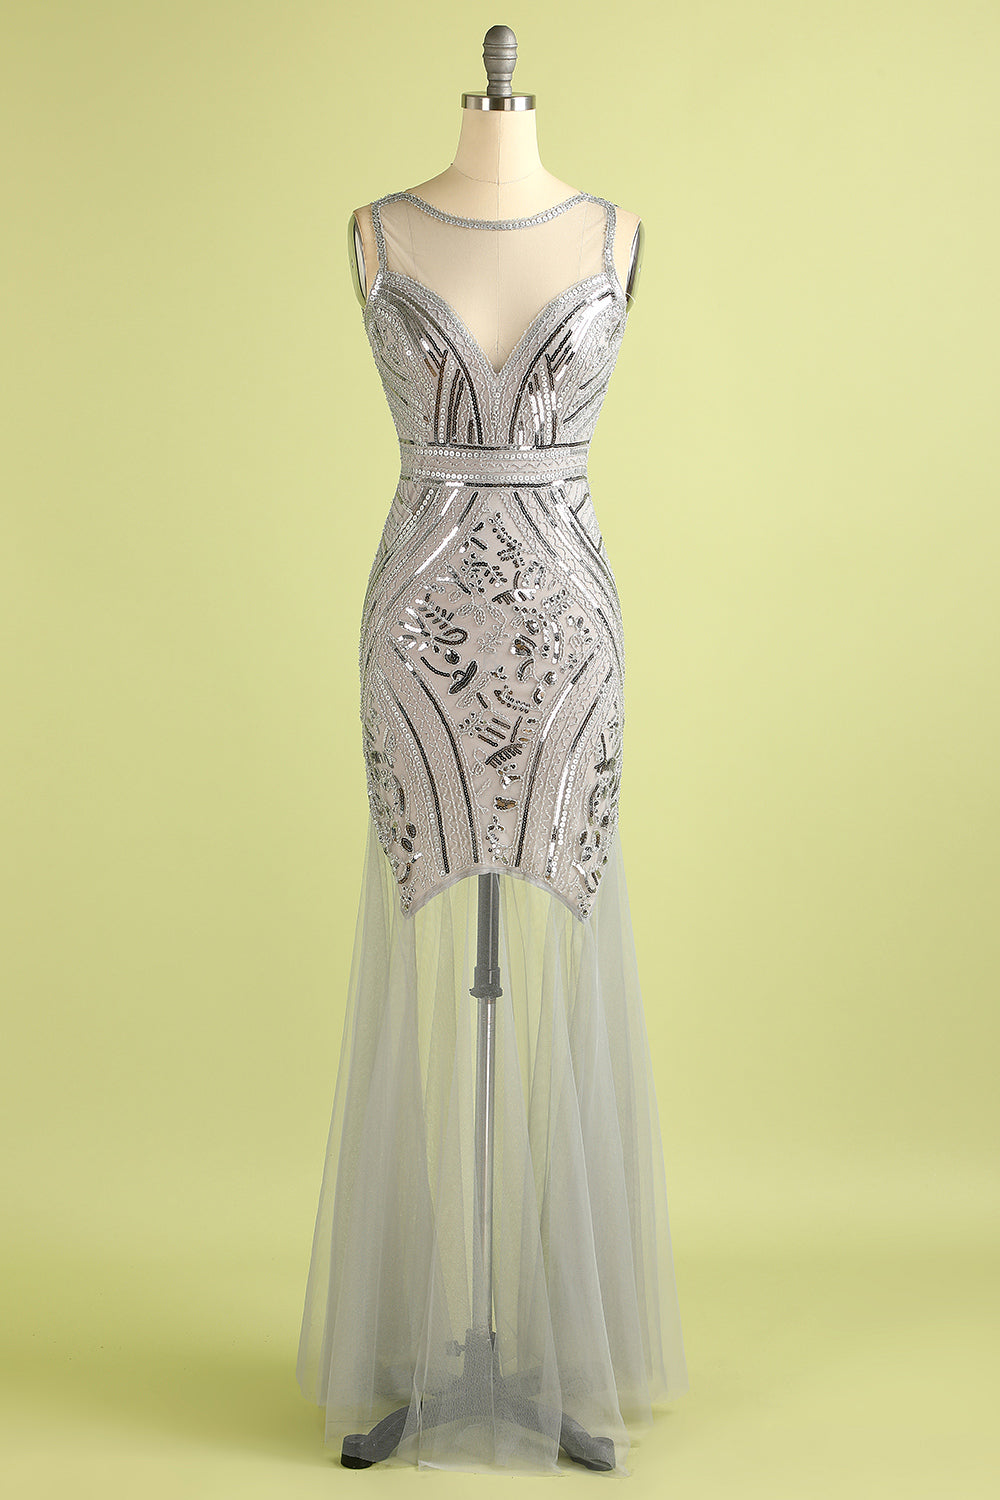 1920s long gown in Sequin Tulle